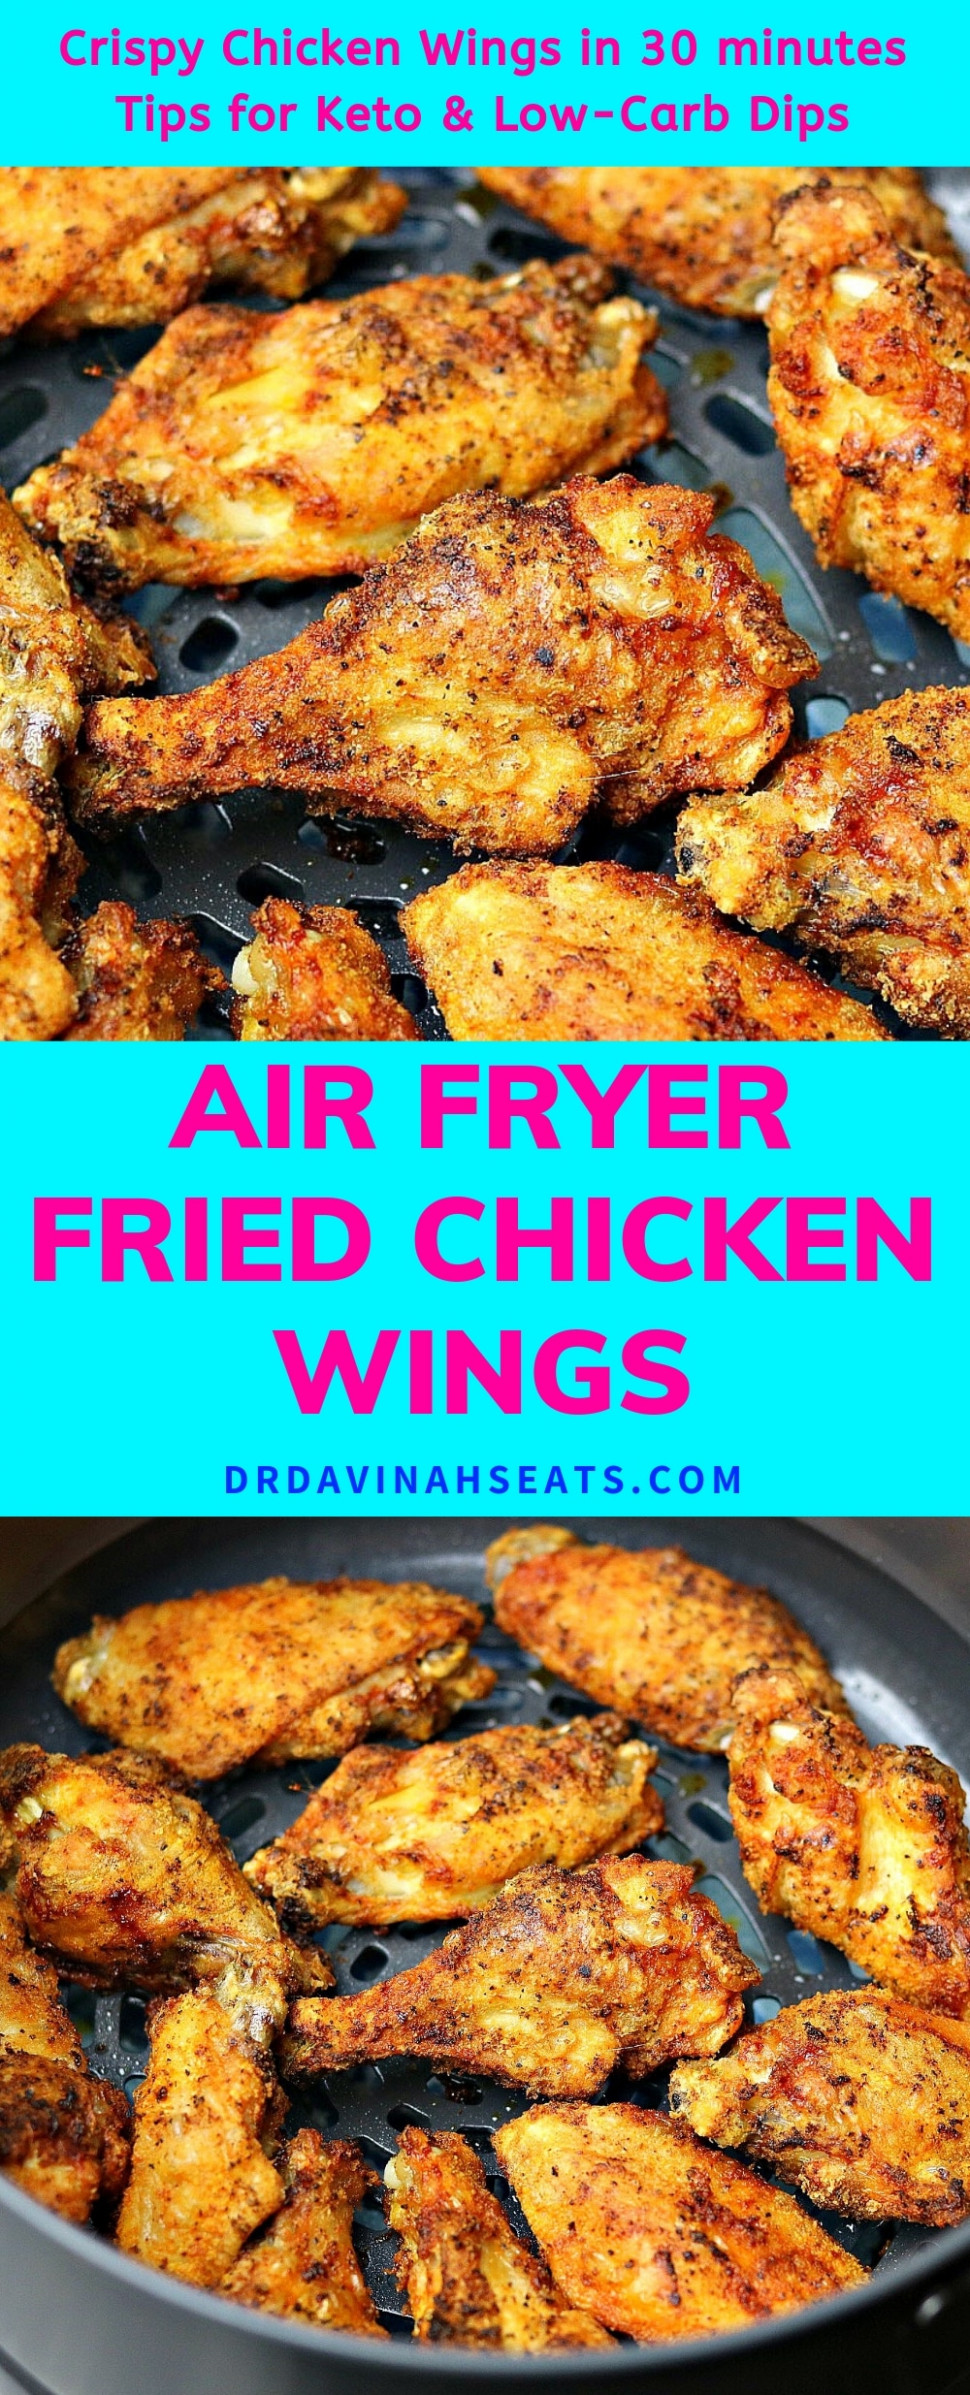 Ninja Air Fryer Fried Chicken Wings Recipe - pressure cooker xl recipes chicken wings